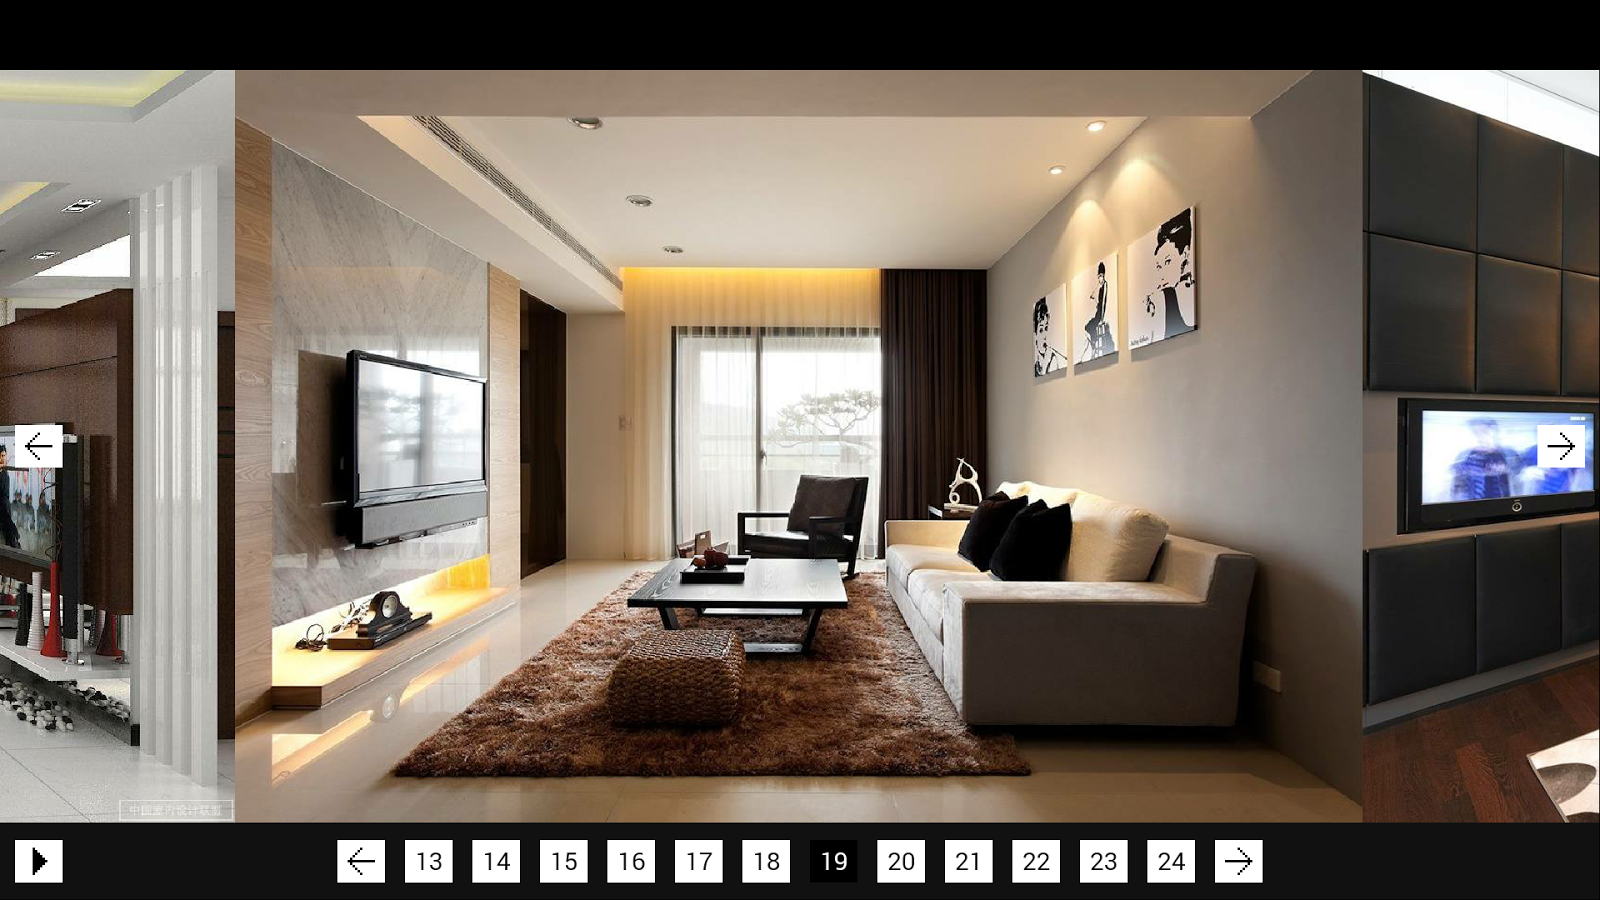 Home interior design android apps on google play Pic of interior design home